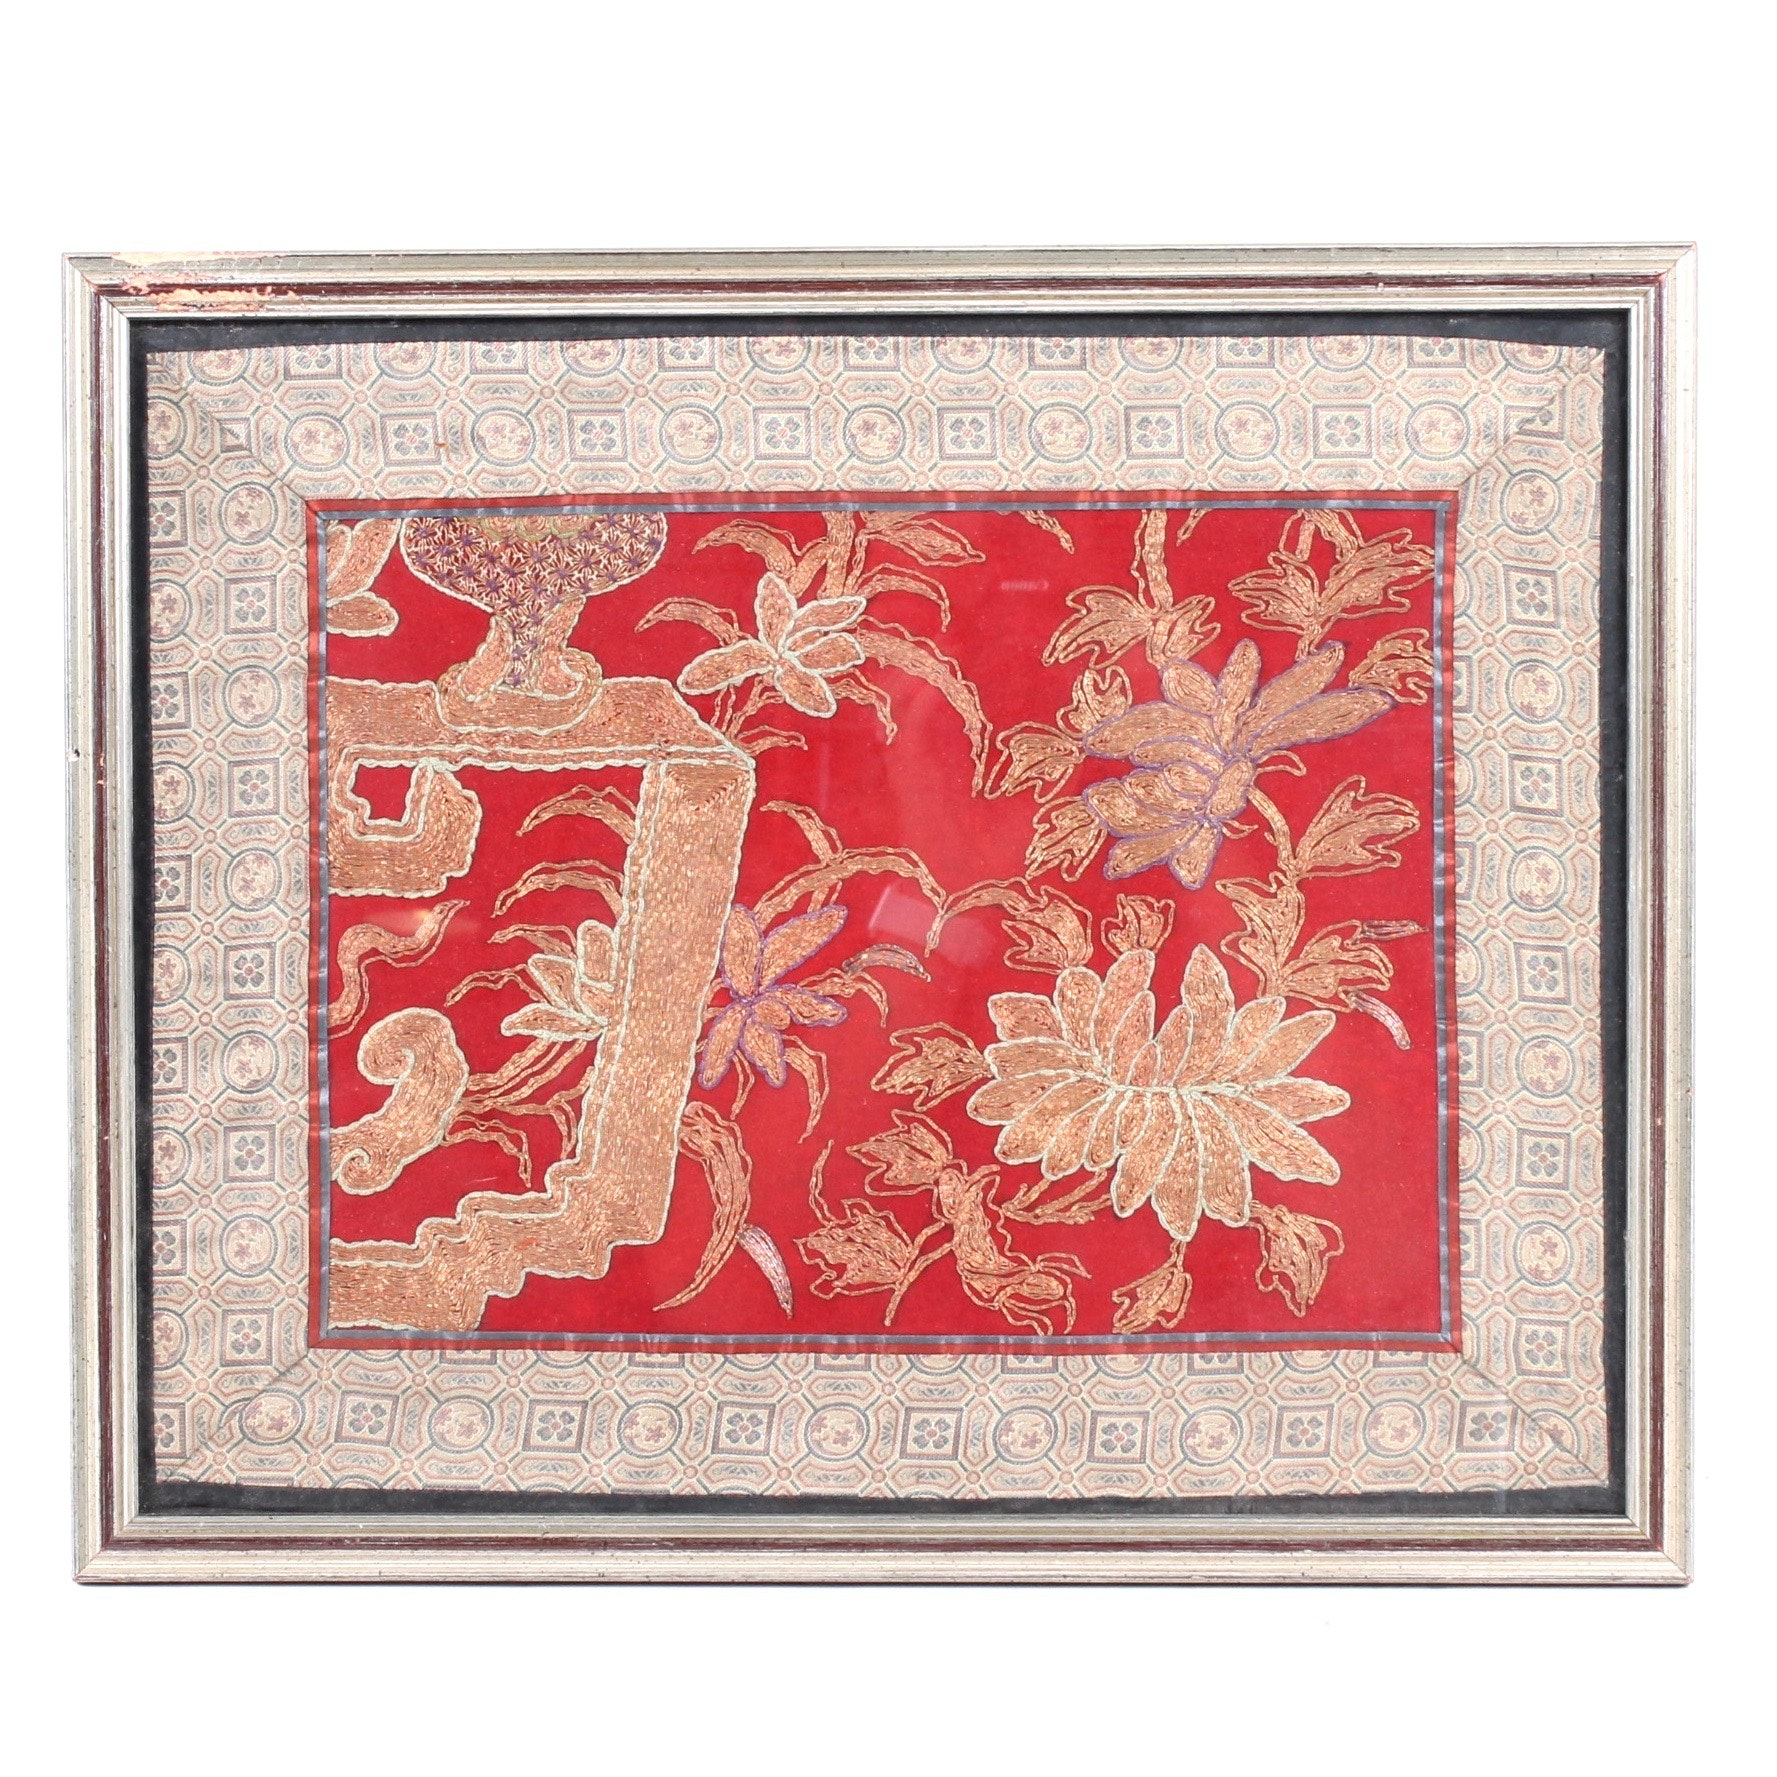 Antique Chinese Metallic Thread Embroidery